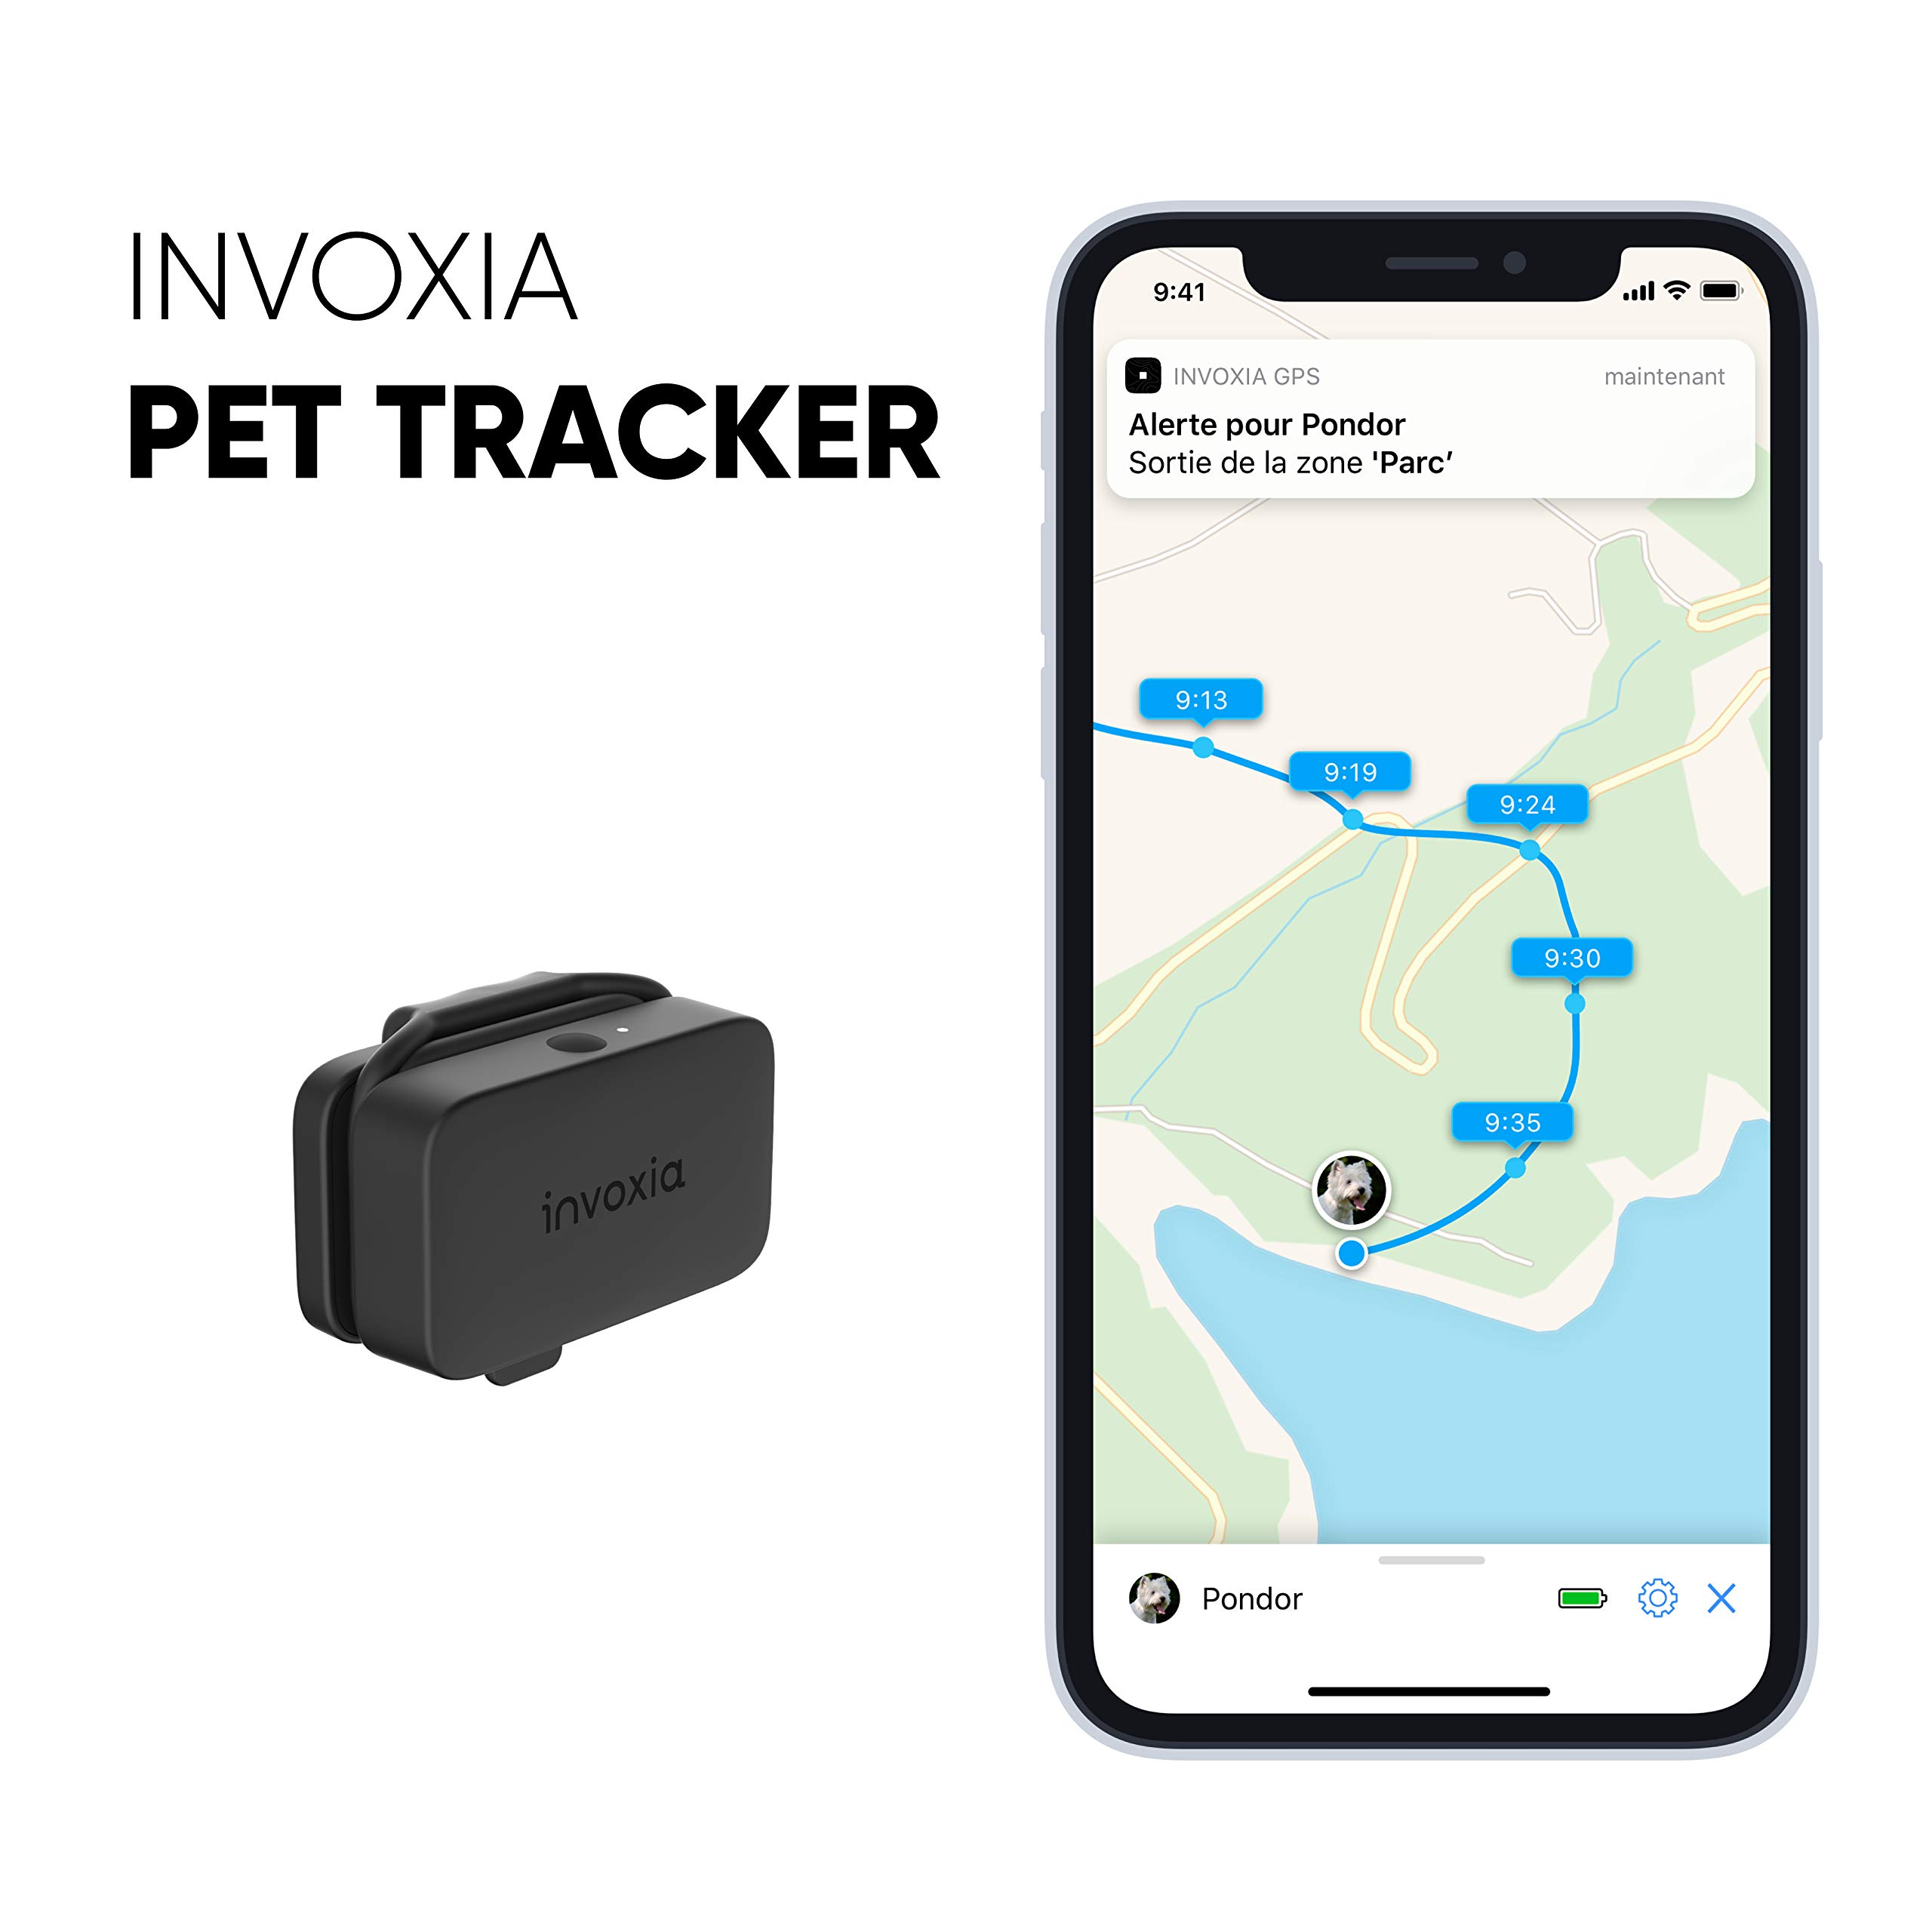 Invoxia Pet Tracker – GPS & activity monitoring tracker for cats and dogs – Subscription included – Light and compact – up to 1 month battery life